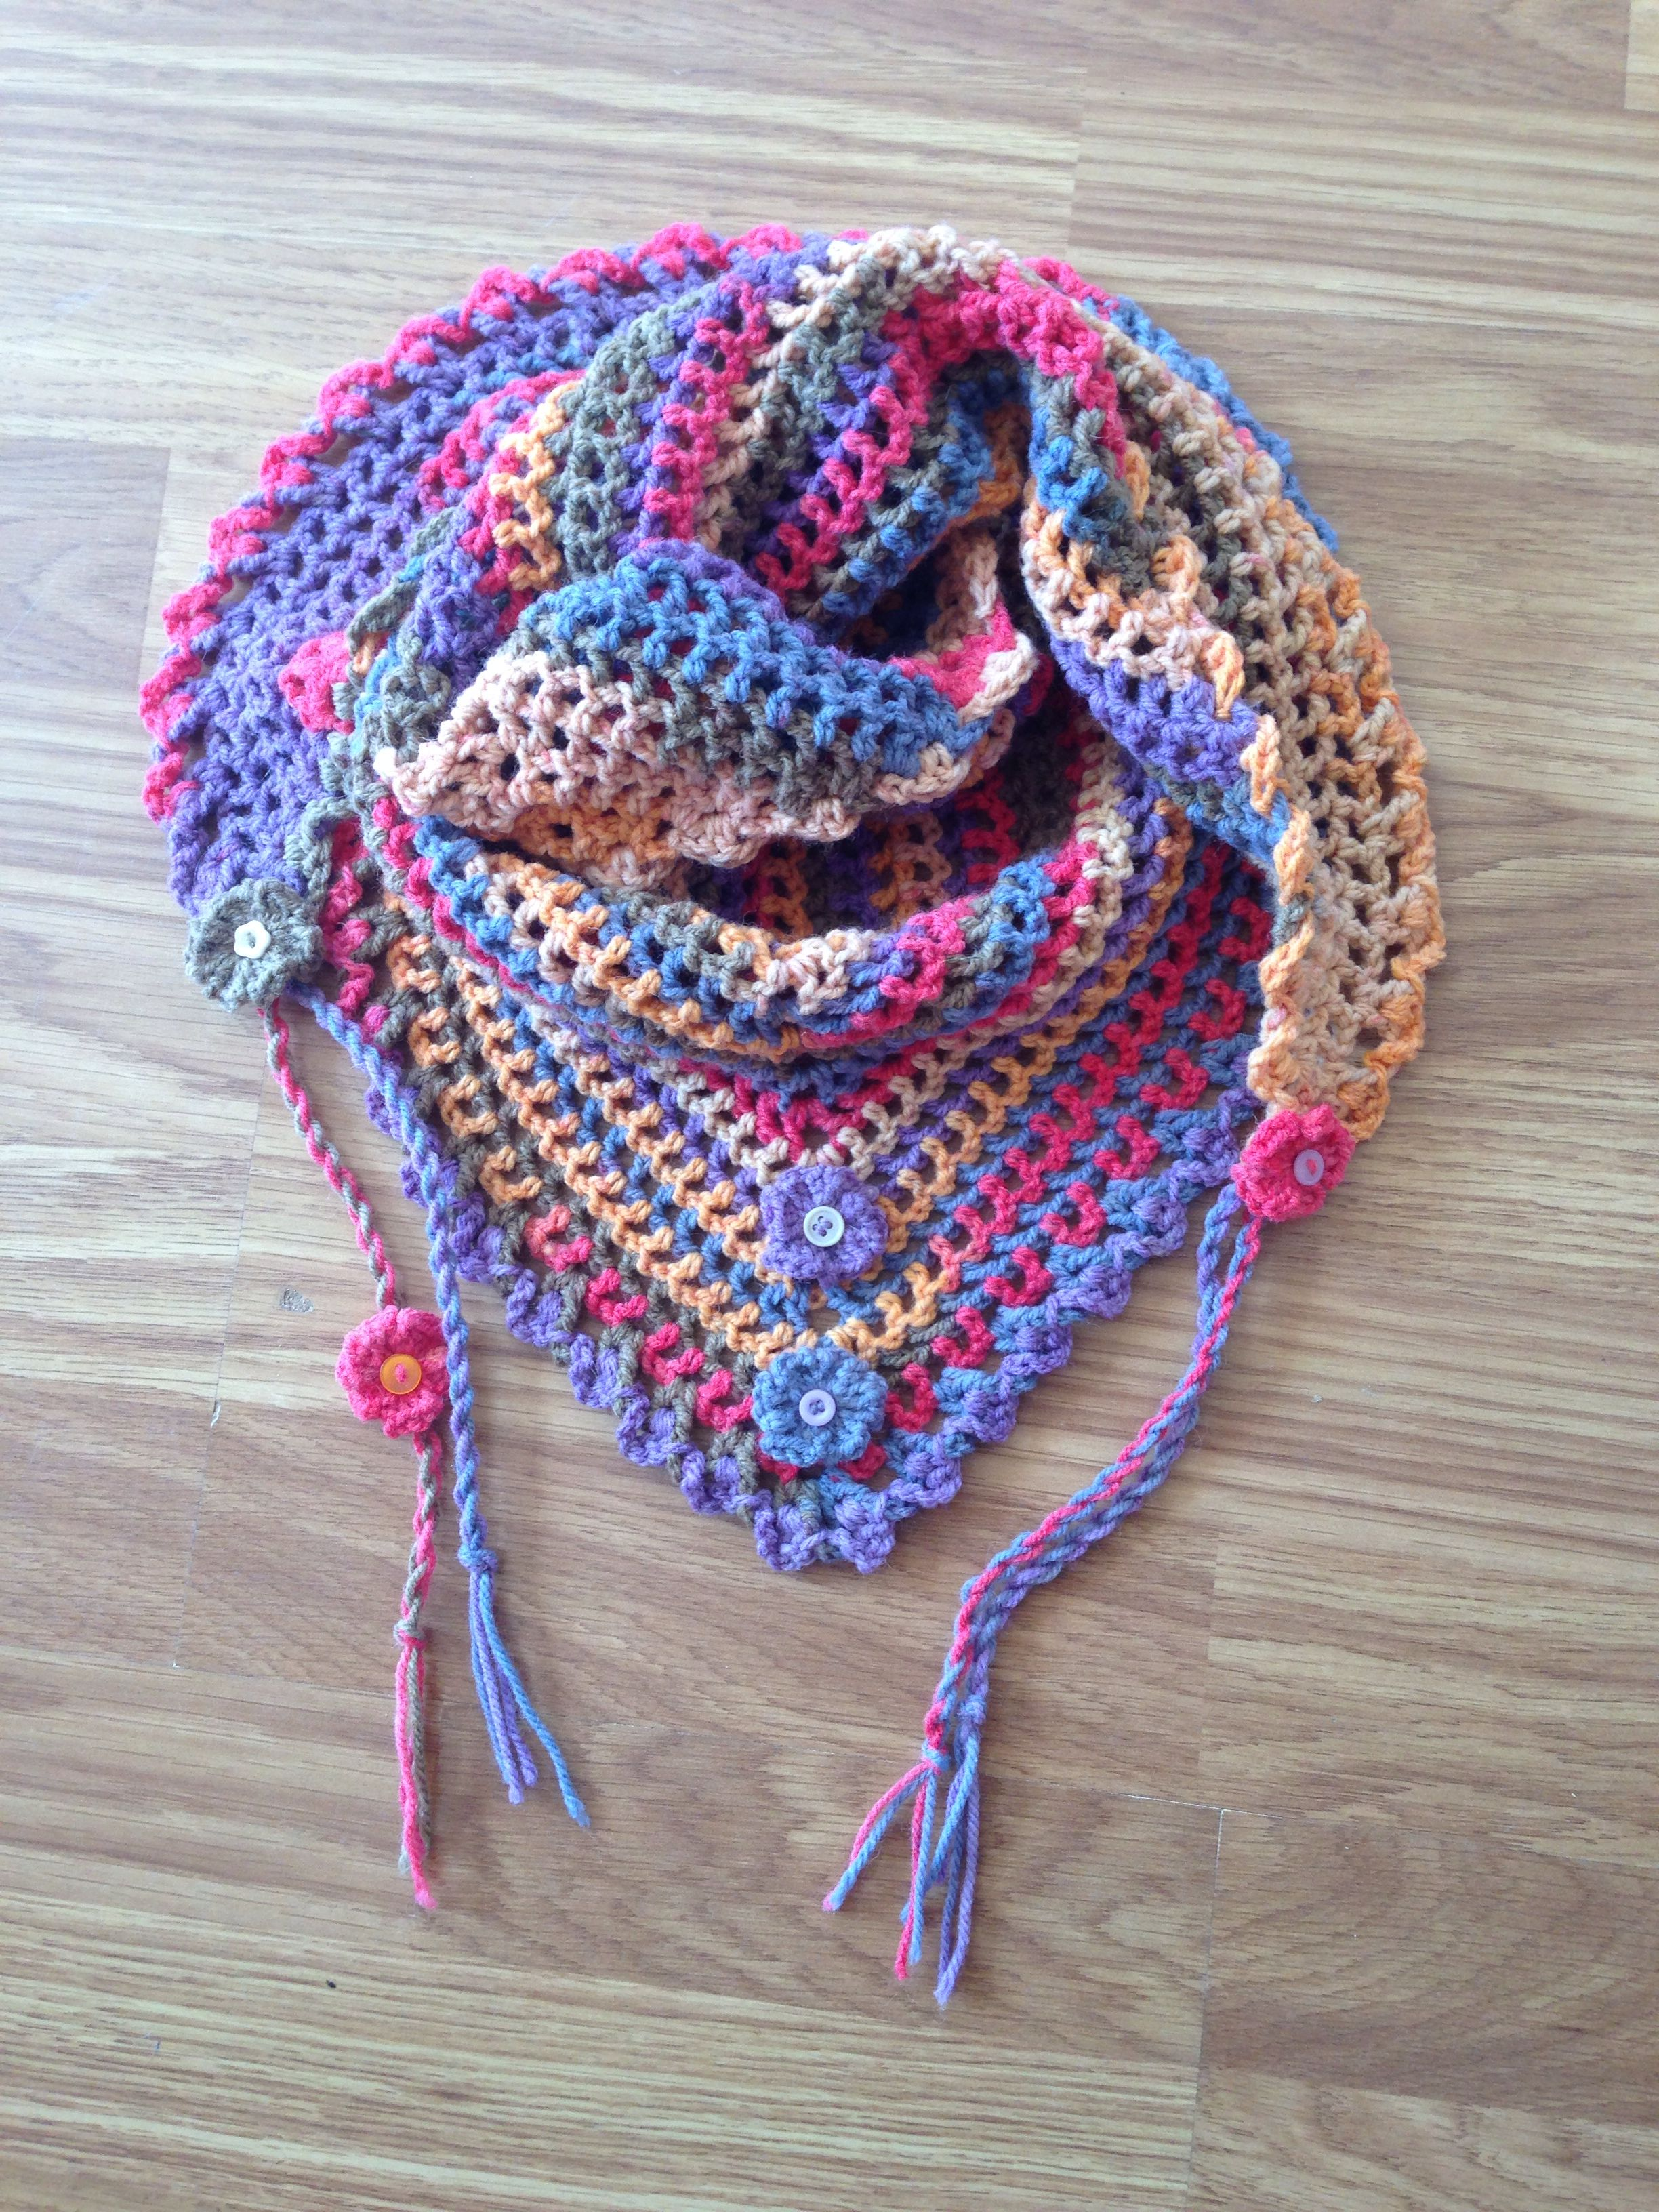 Pin by Sarah Fewings on Crochet Scarves Pinterest